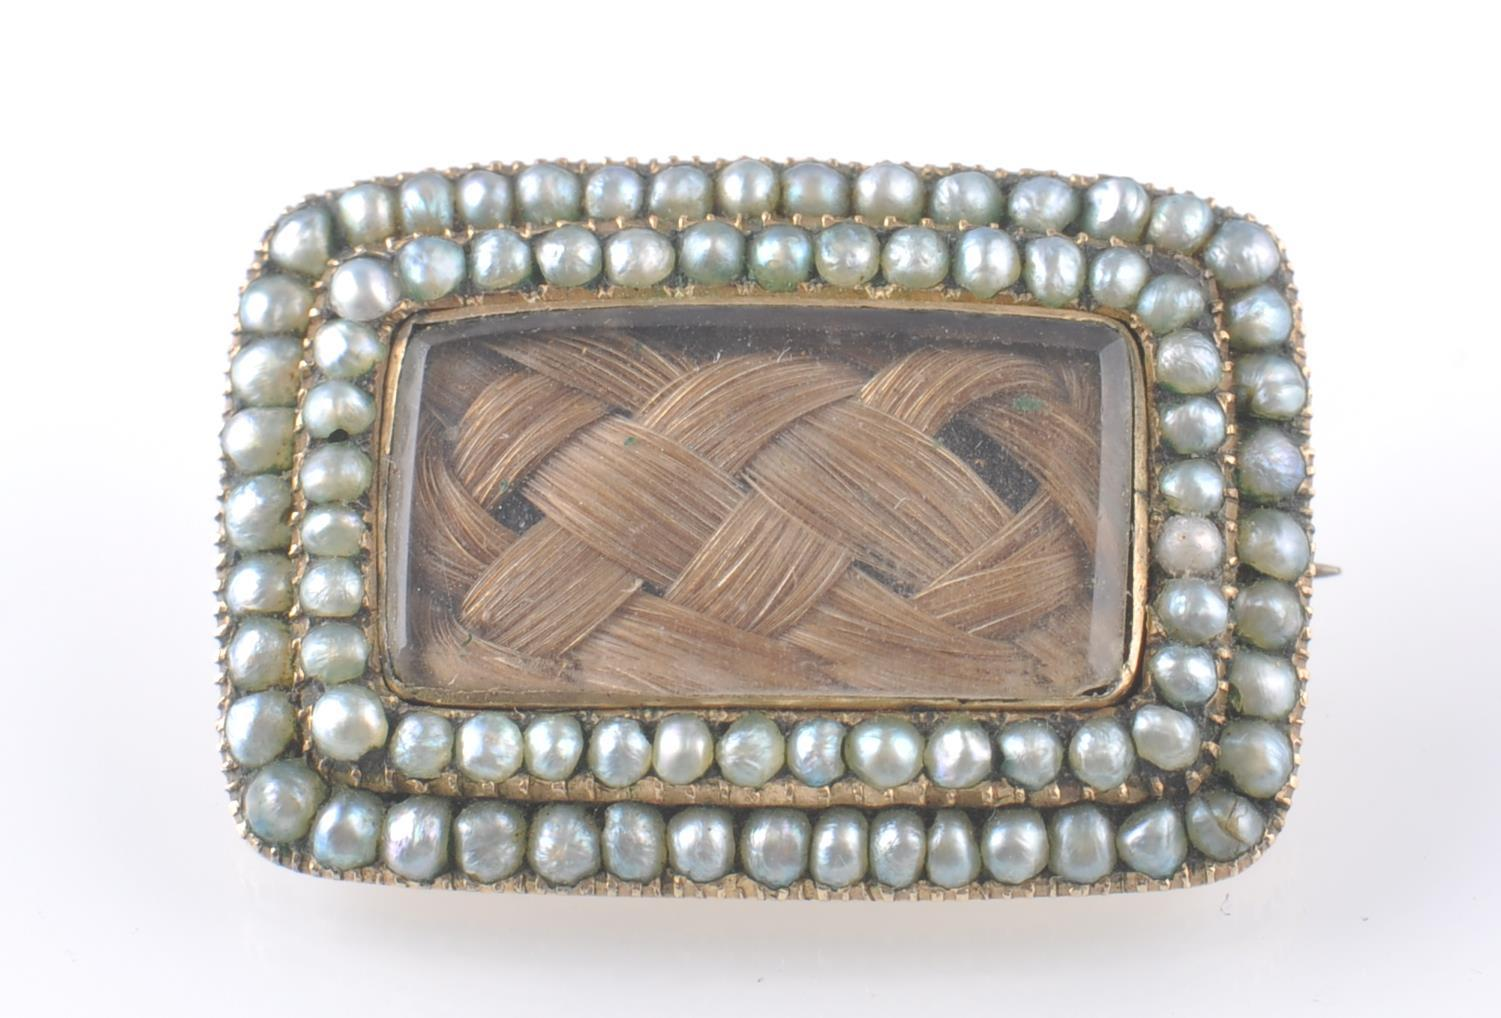 GEORGIAN GOLD SEED PEARL SET MOURNING BROOCH